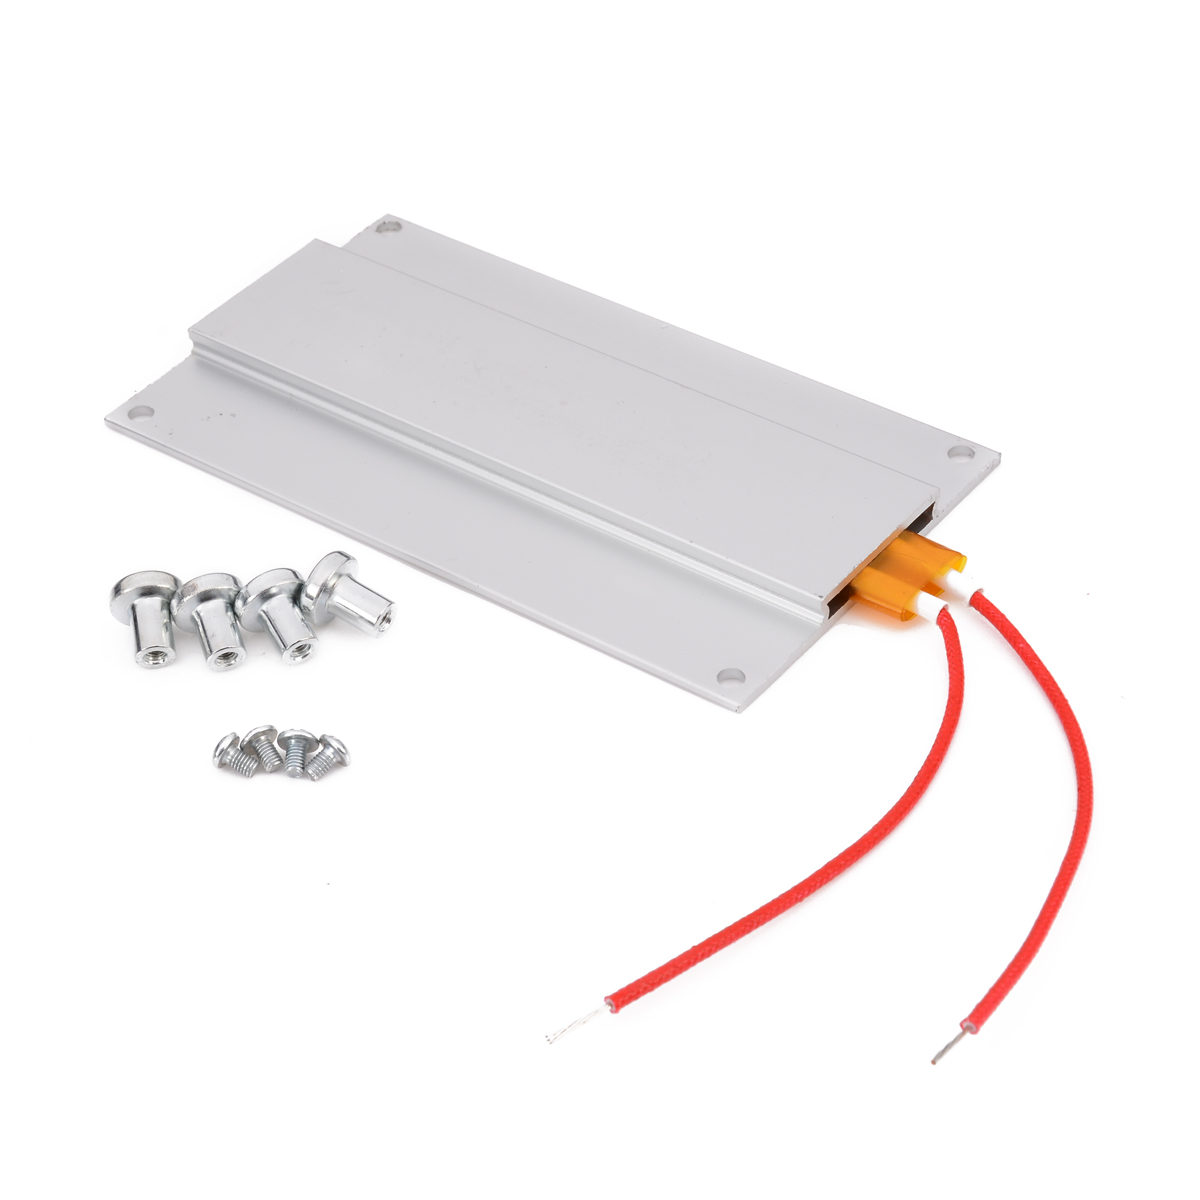 AC 220V LED Remover PTC Heating Plate Soldering Chip Remove Weld BGA Station Split Plate 120*70mm for BGA Solder Ball Mayitr